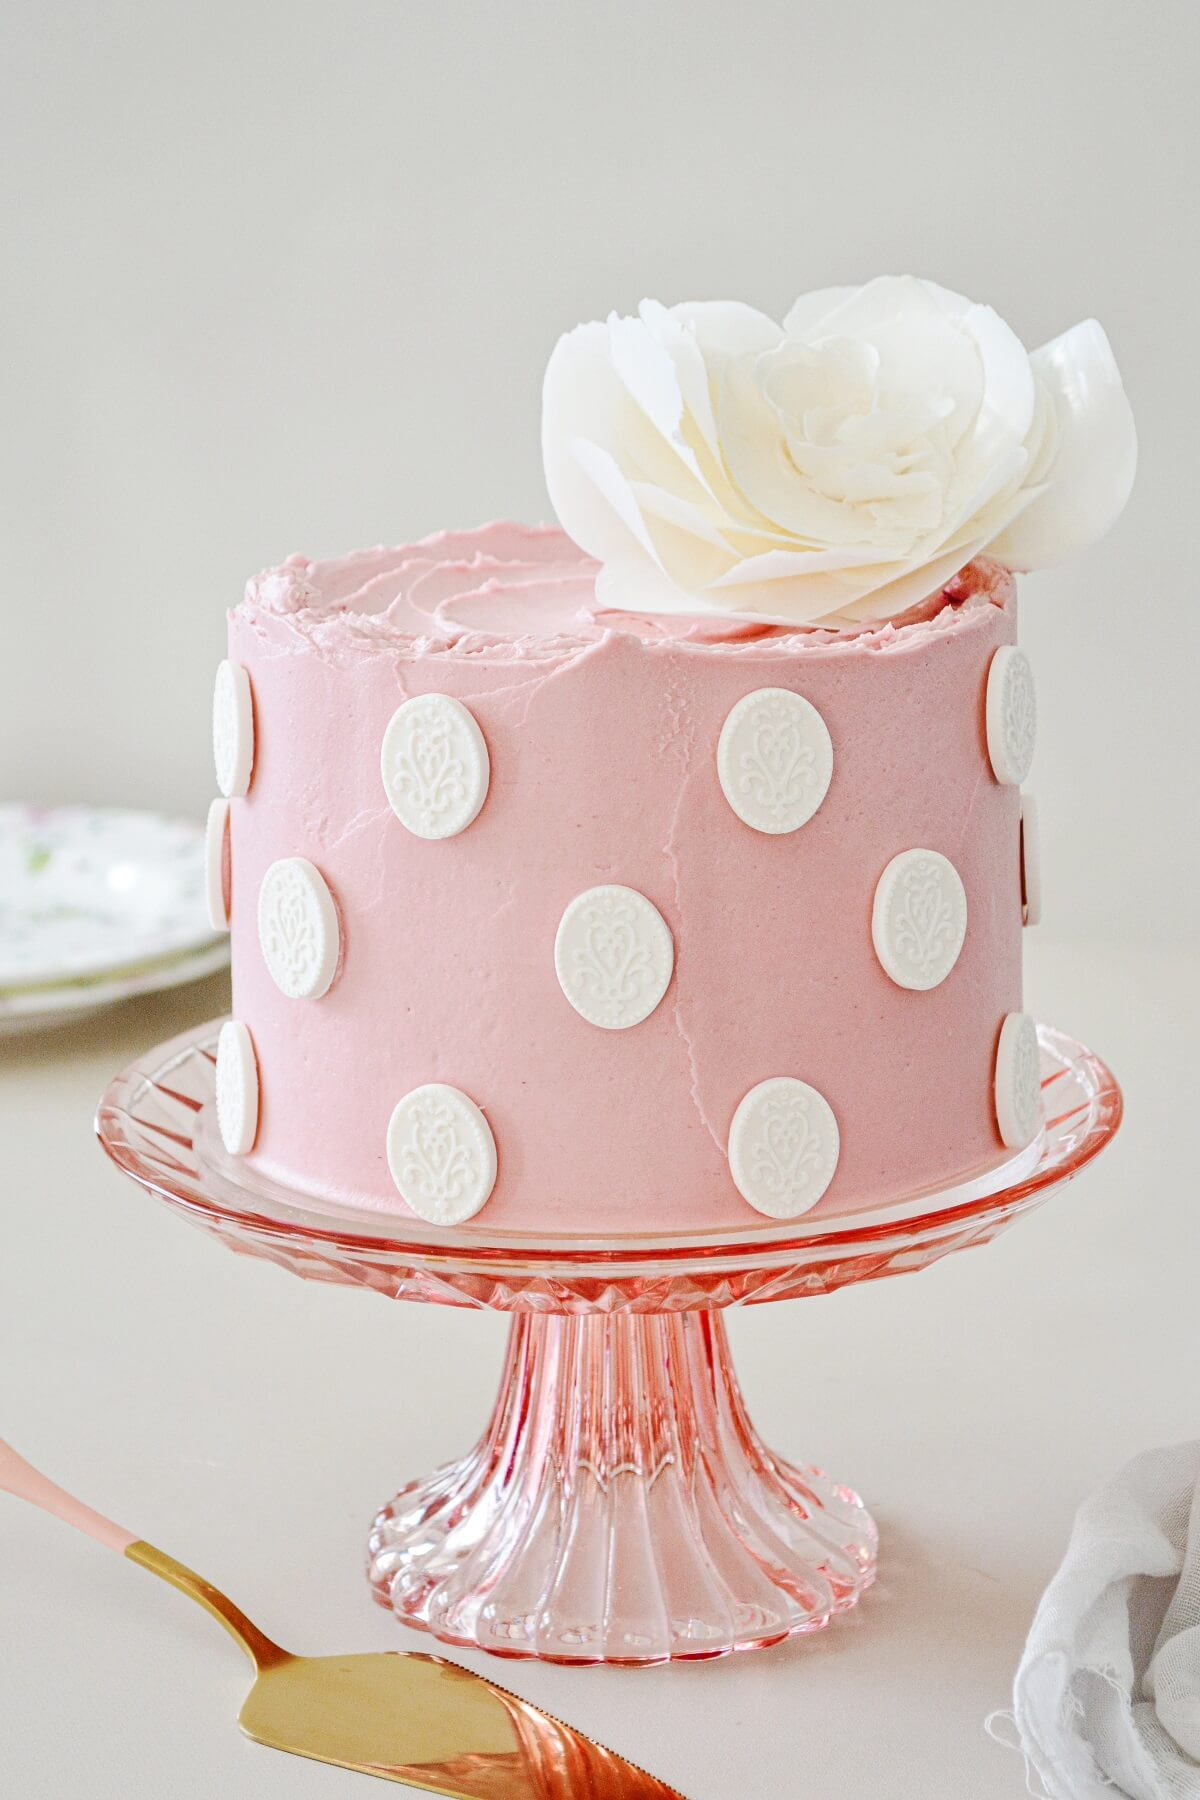 Lemon raspberry cake on a pink cake pedestal, topped with a white chocolate flower.